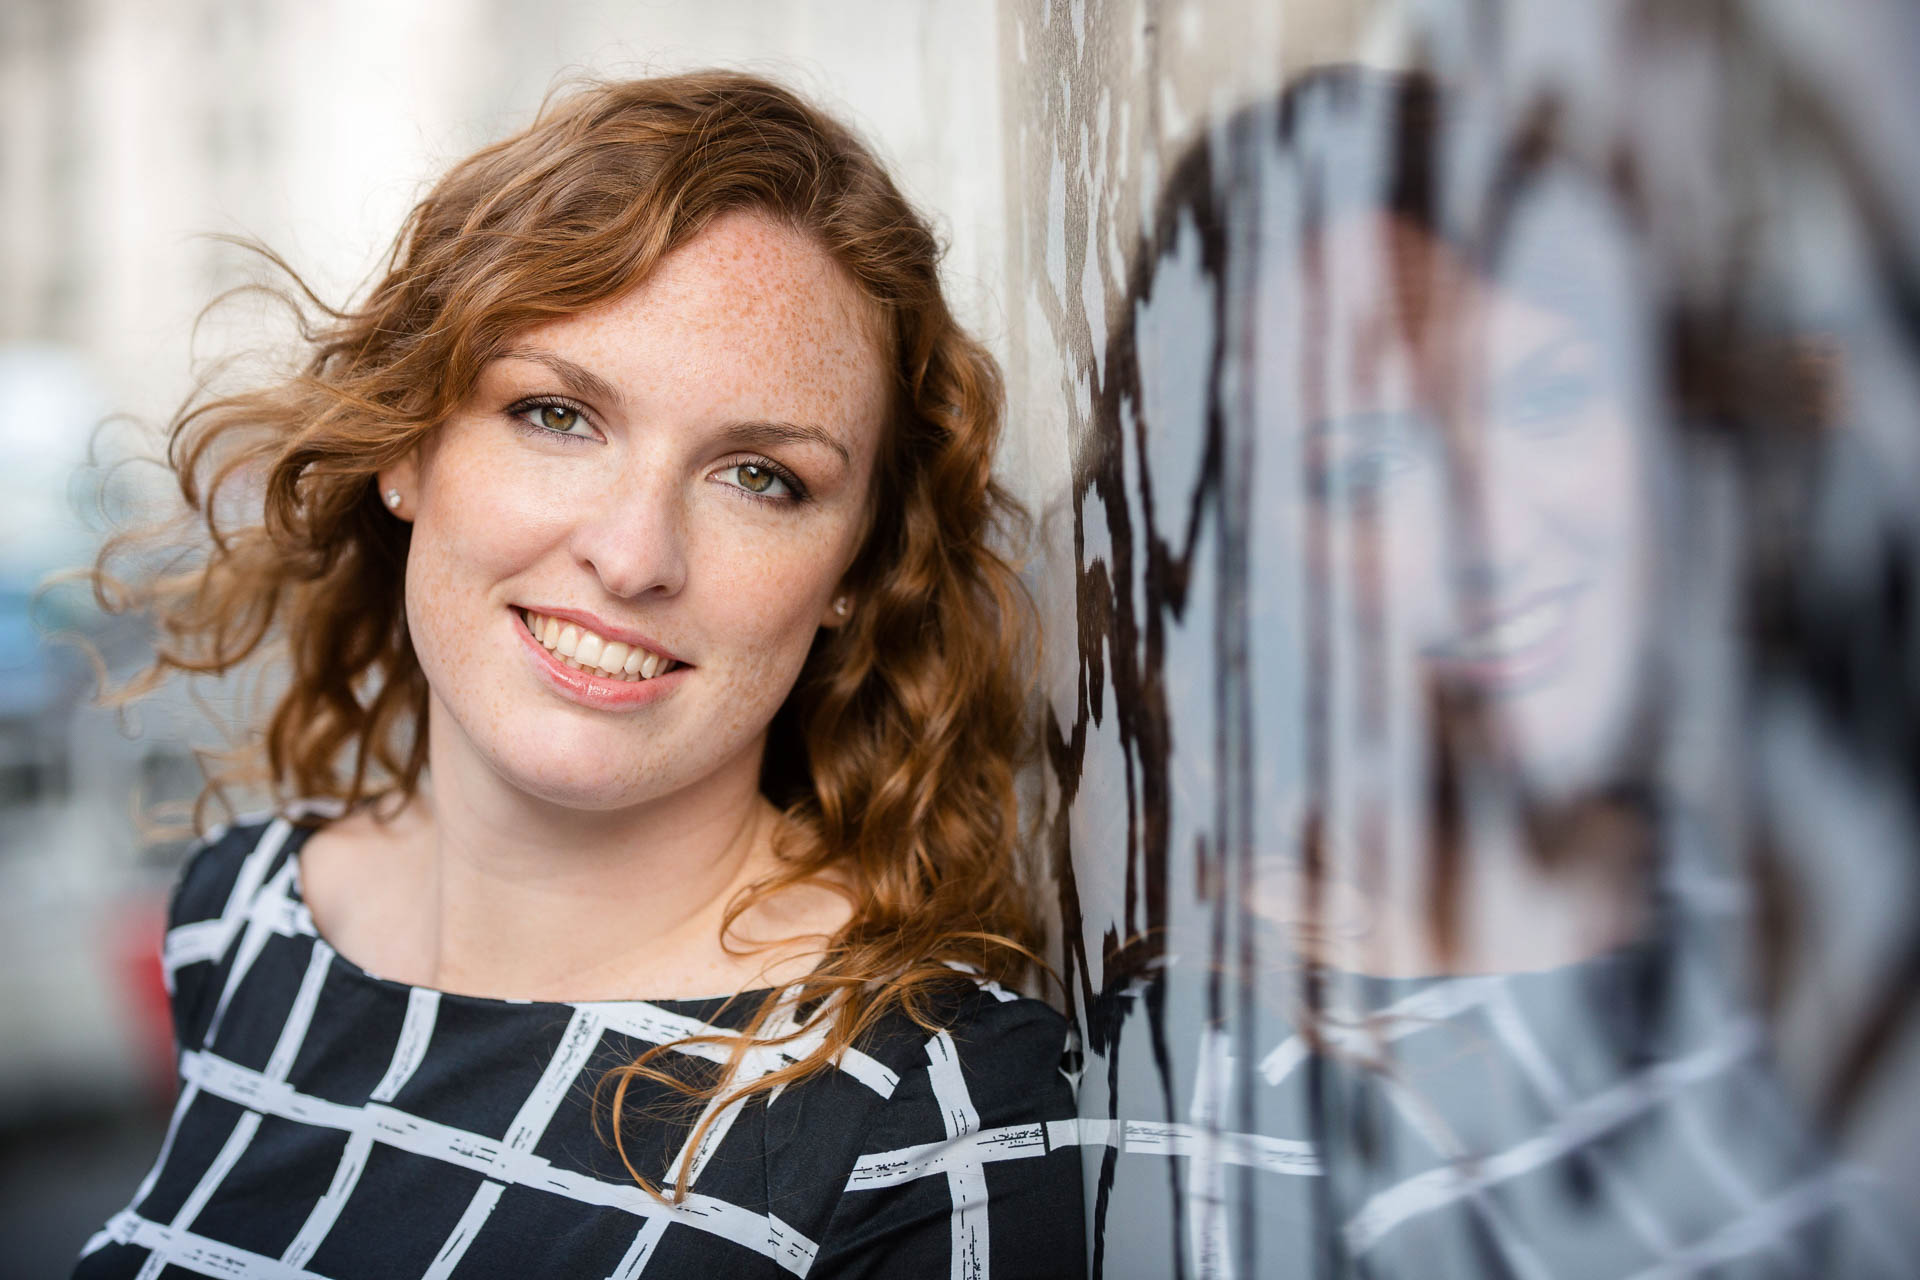 Professional headshot of woman against wall with reflection